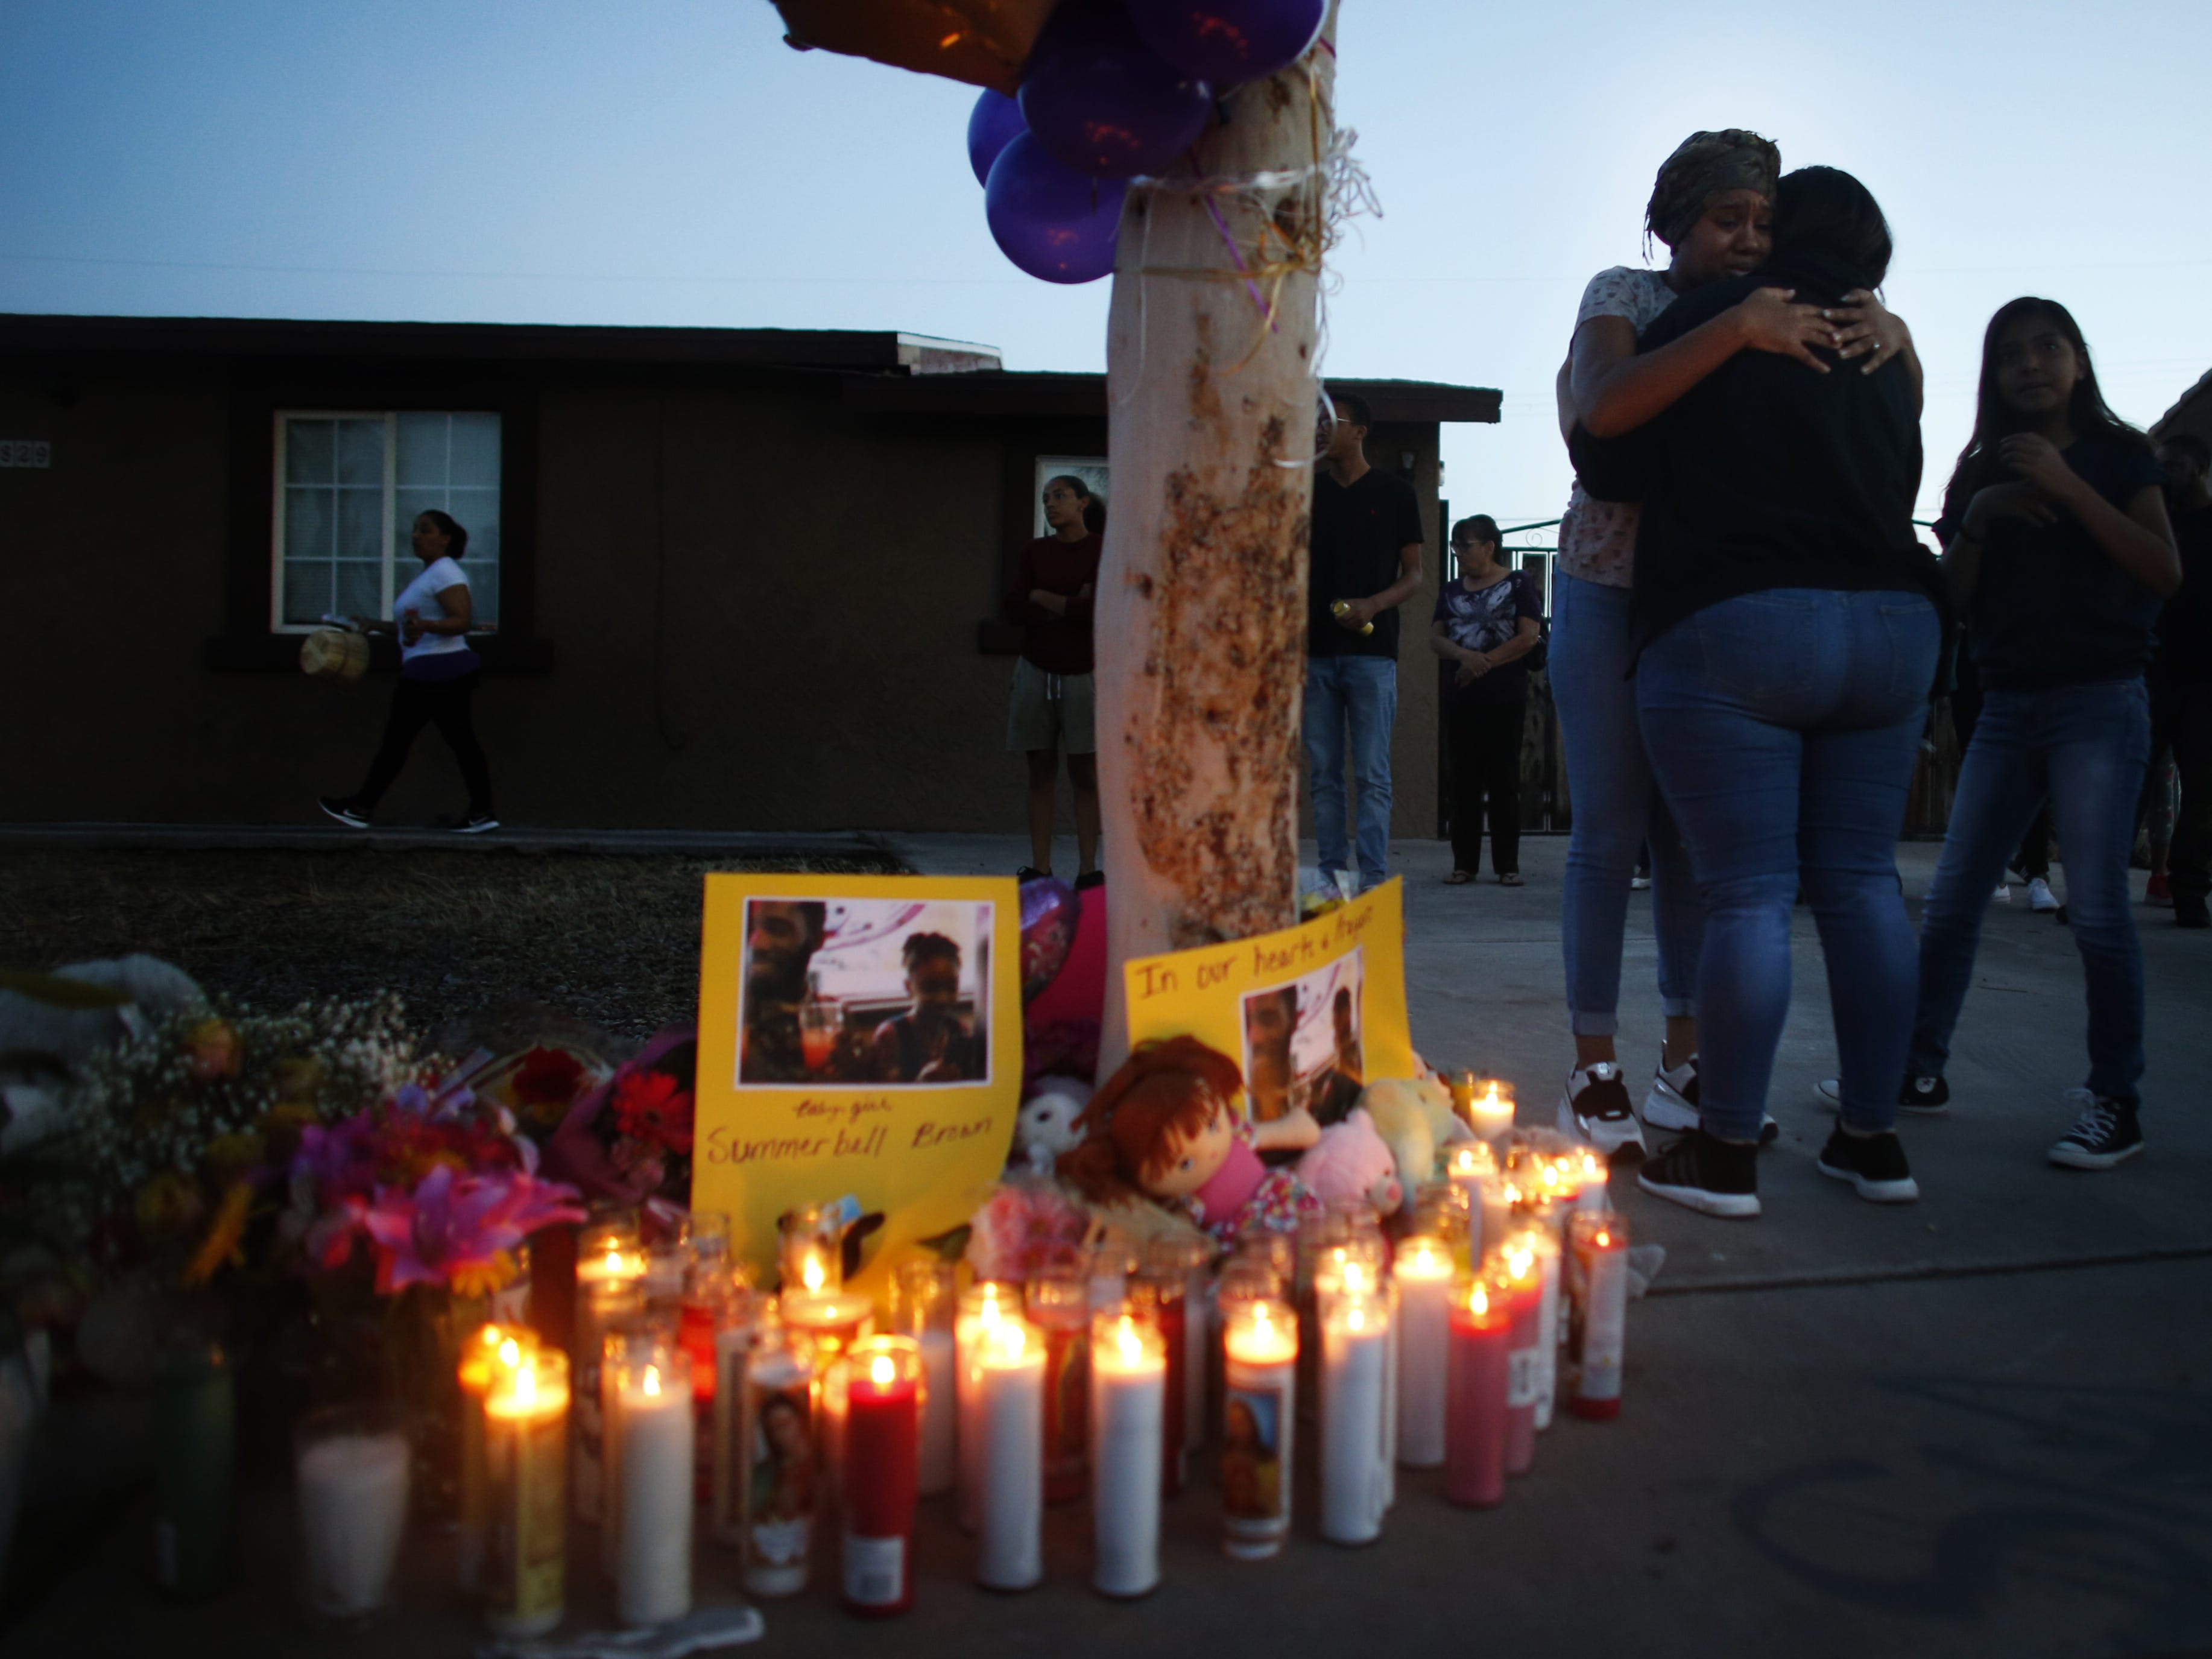 Summer's mother Taniesha Brown hugs people who came to support their family at a vigil on April 5, 2019, for Summer Bell Brown outside her home where she was shot and killed in Phoenix.